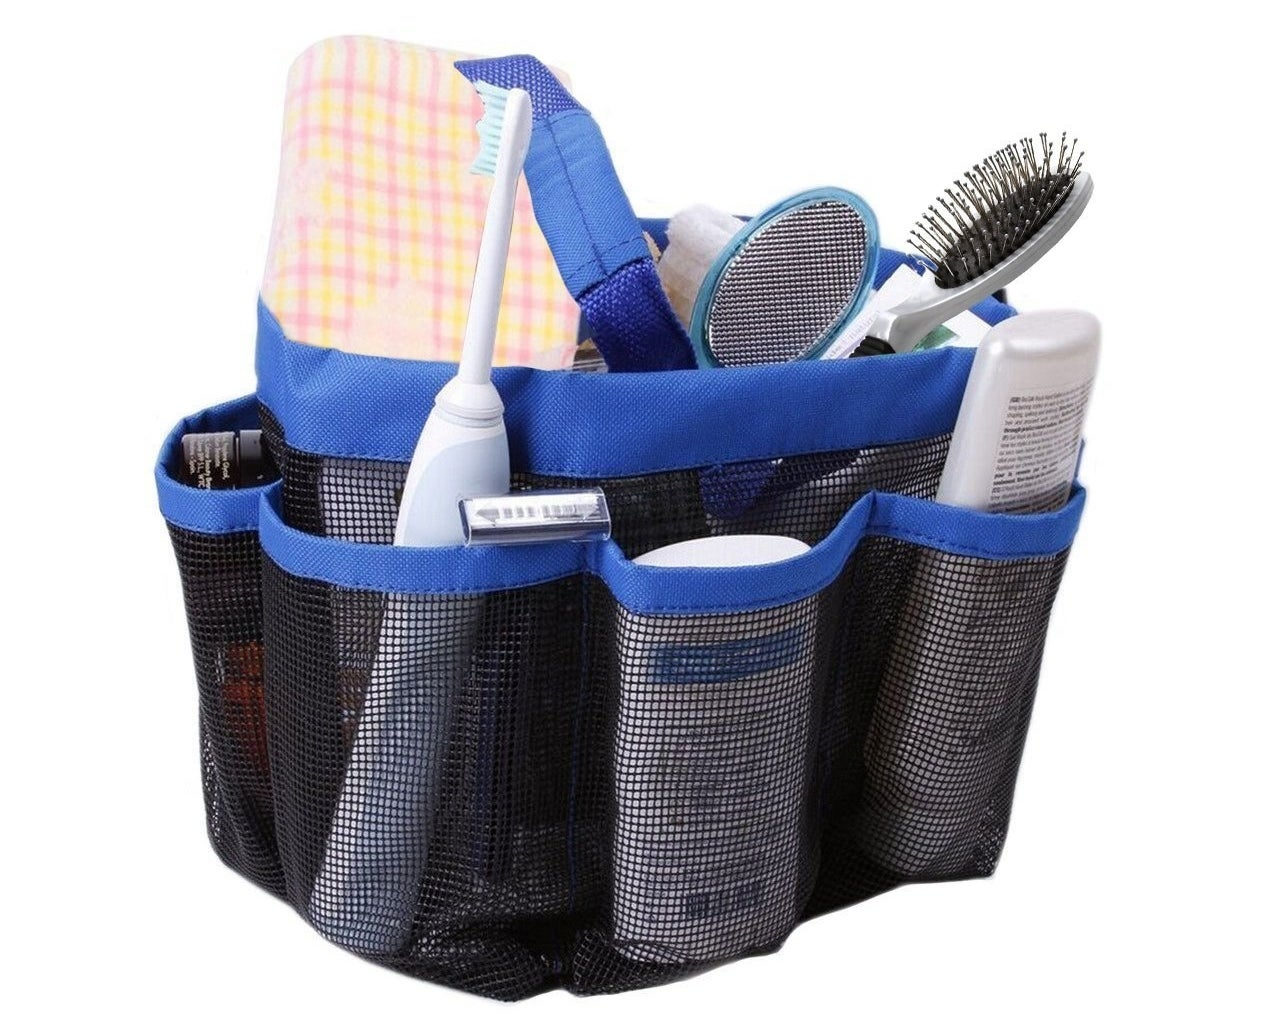 A Mesh Shower Caddy Because Most Dorm Buildings Have Communal Bathrooms And How Else Are You Going To Transport All Your Things